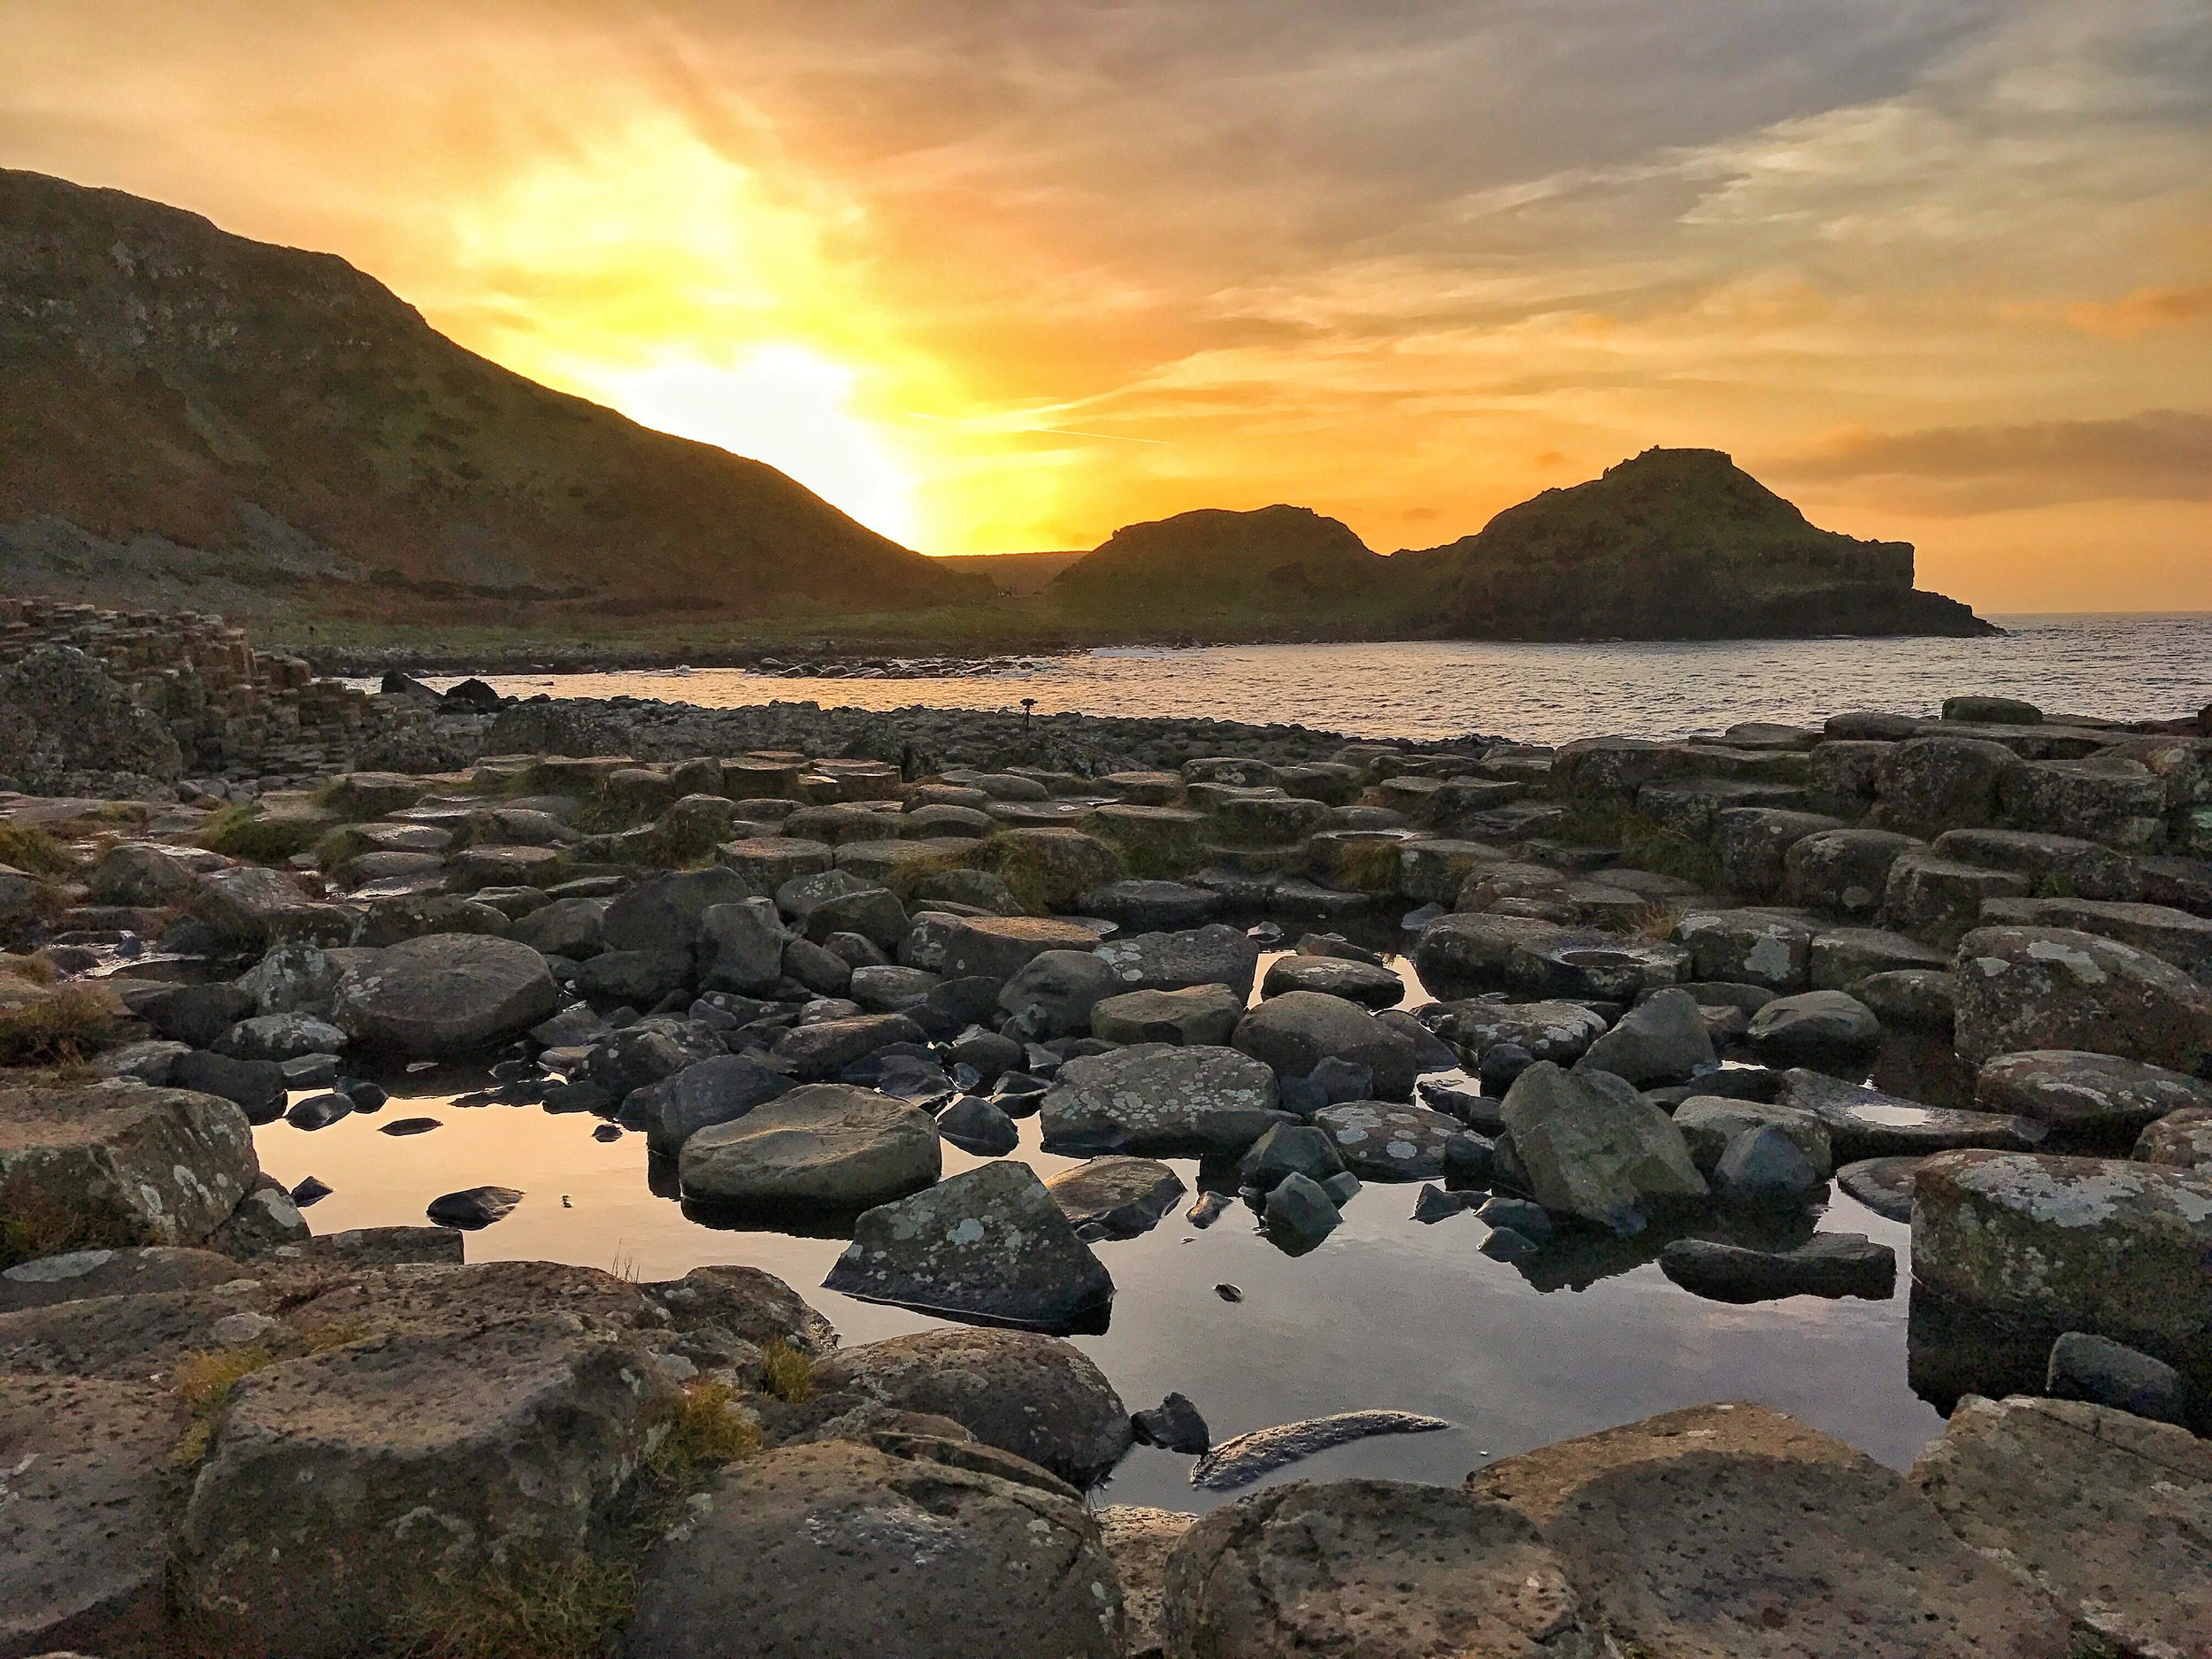 The Giant's Causeway itself was formed by a giant lava flow over sixty million years ago; or competing giants, depending on what one believes.